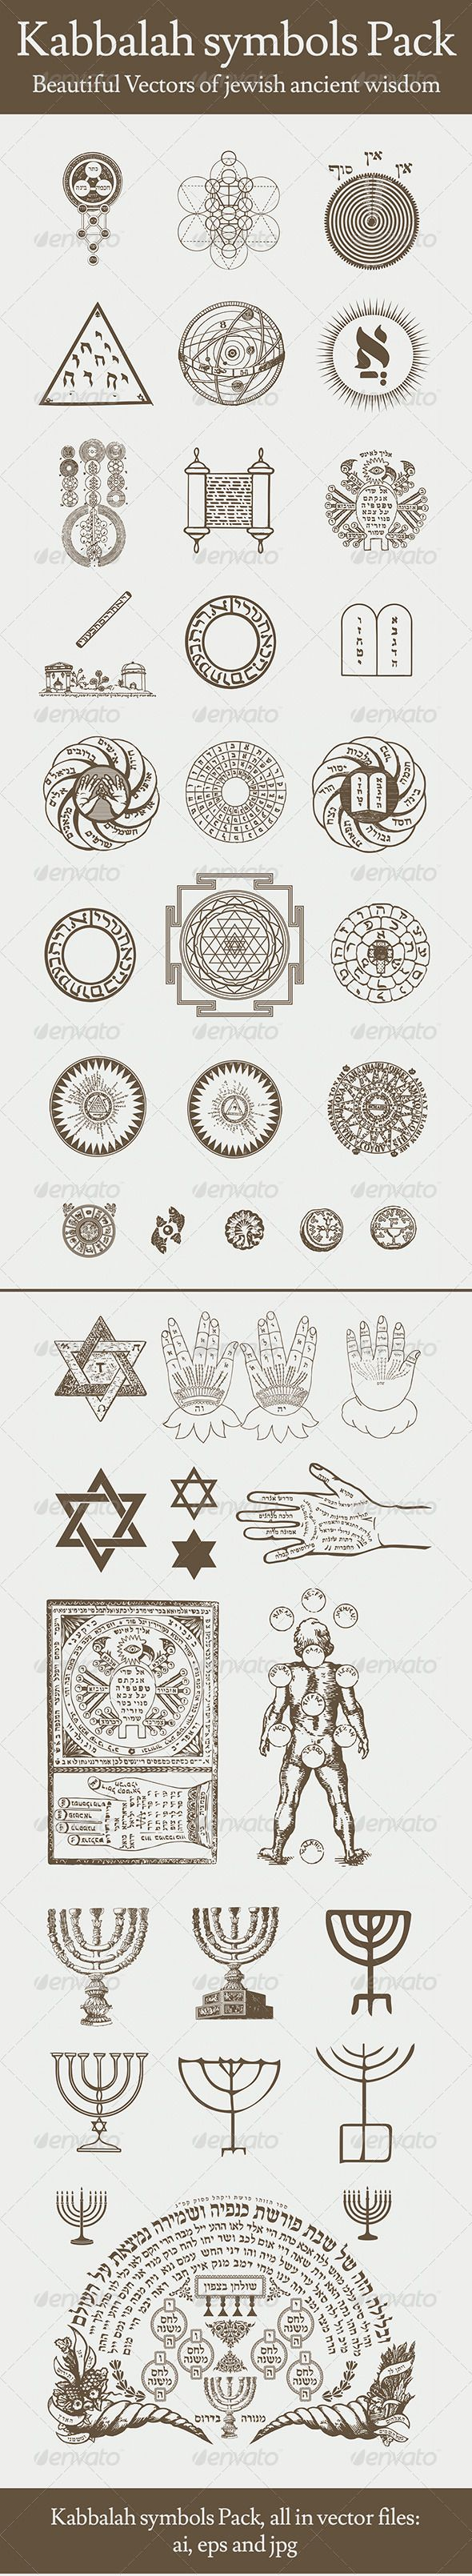 Kabbalah Symbols Pack Pinterest Symbols Alchemy And Occult